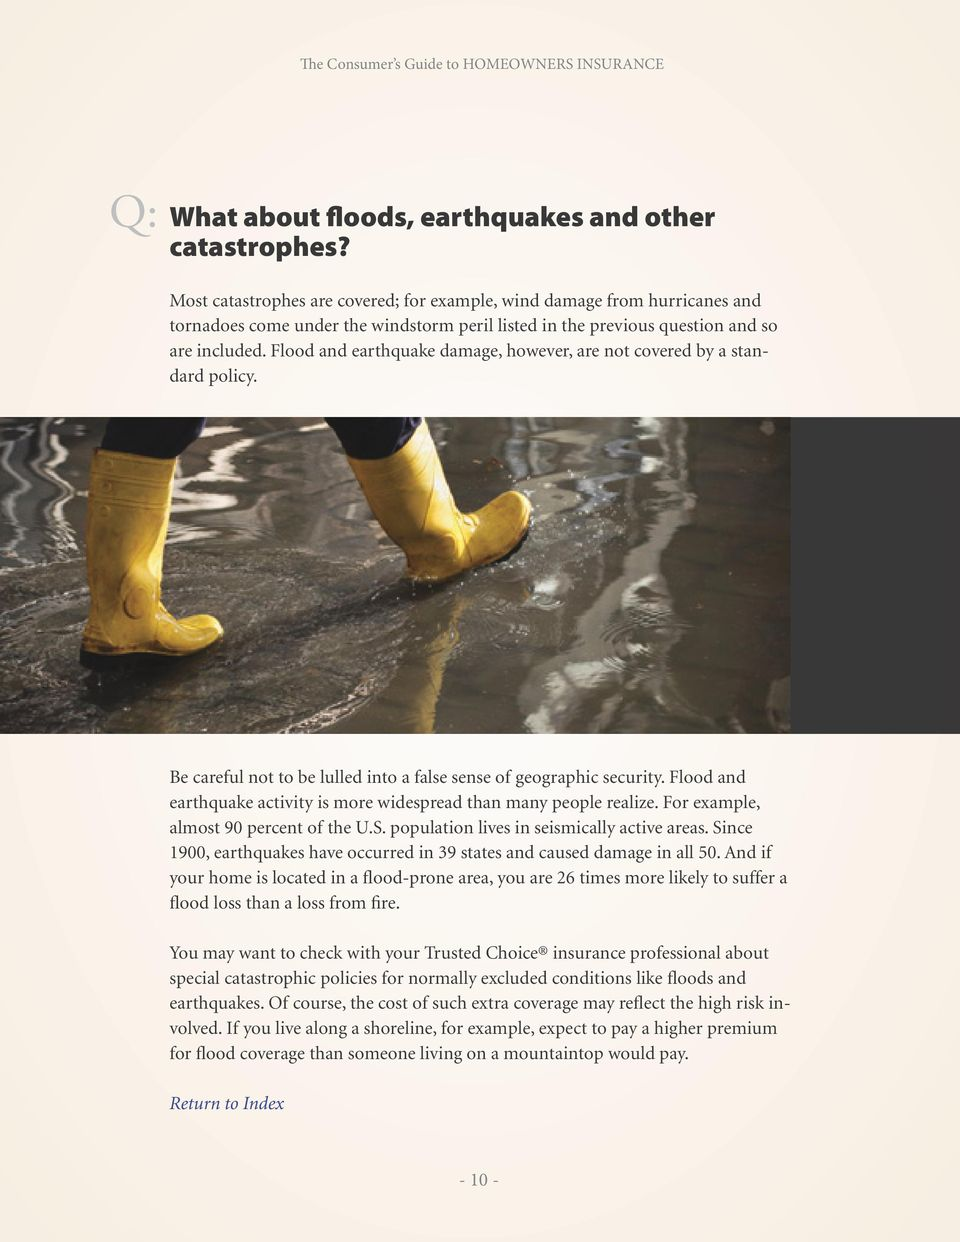 Flood and earthquake damage, however, are not covered by a standard policy. Be careful not to be lulled into a false sense of geographic security.